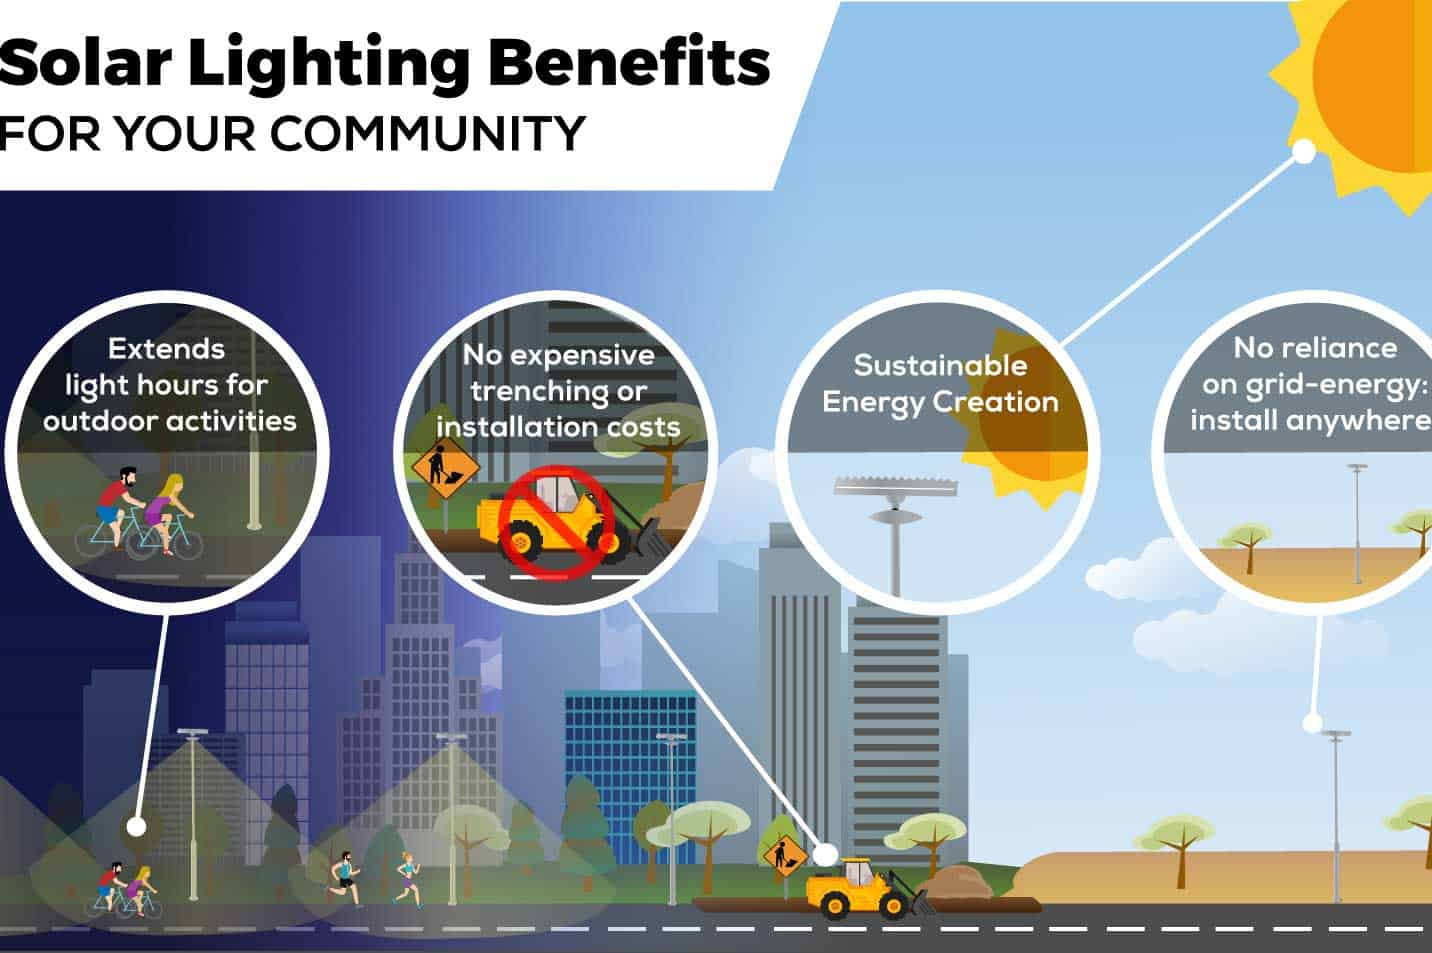 Solar Lighting Benefits for Your Community